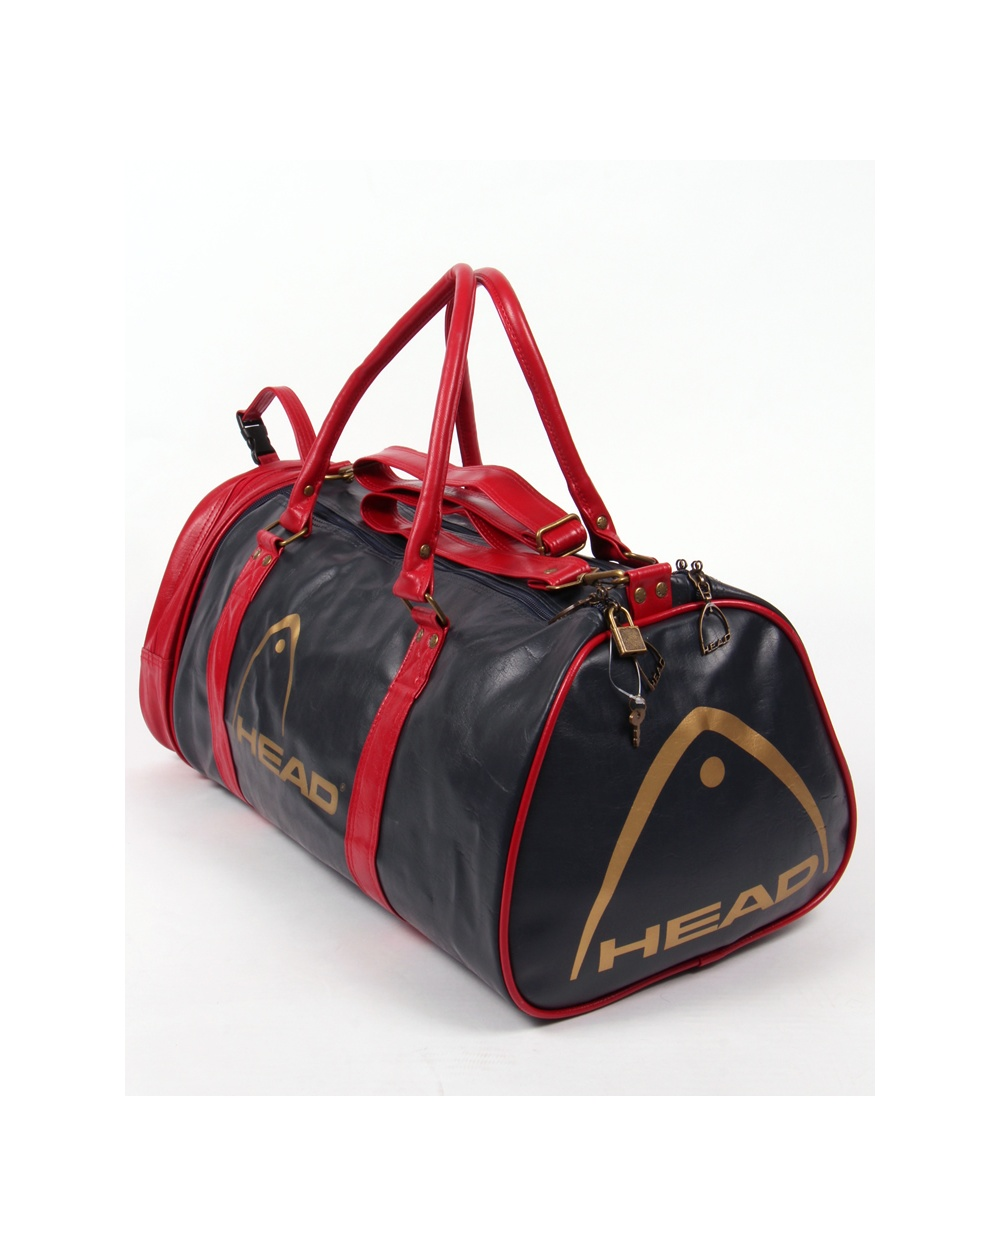 7c61001c7843 Head Head Monte Carlo 80s Holdall Navy red gold